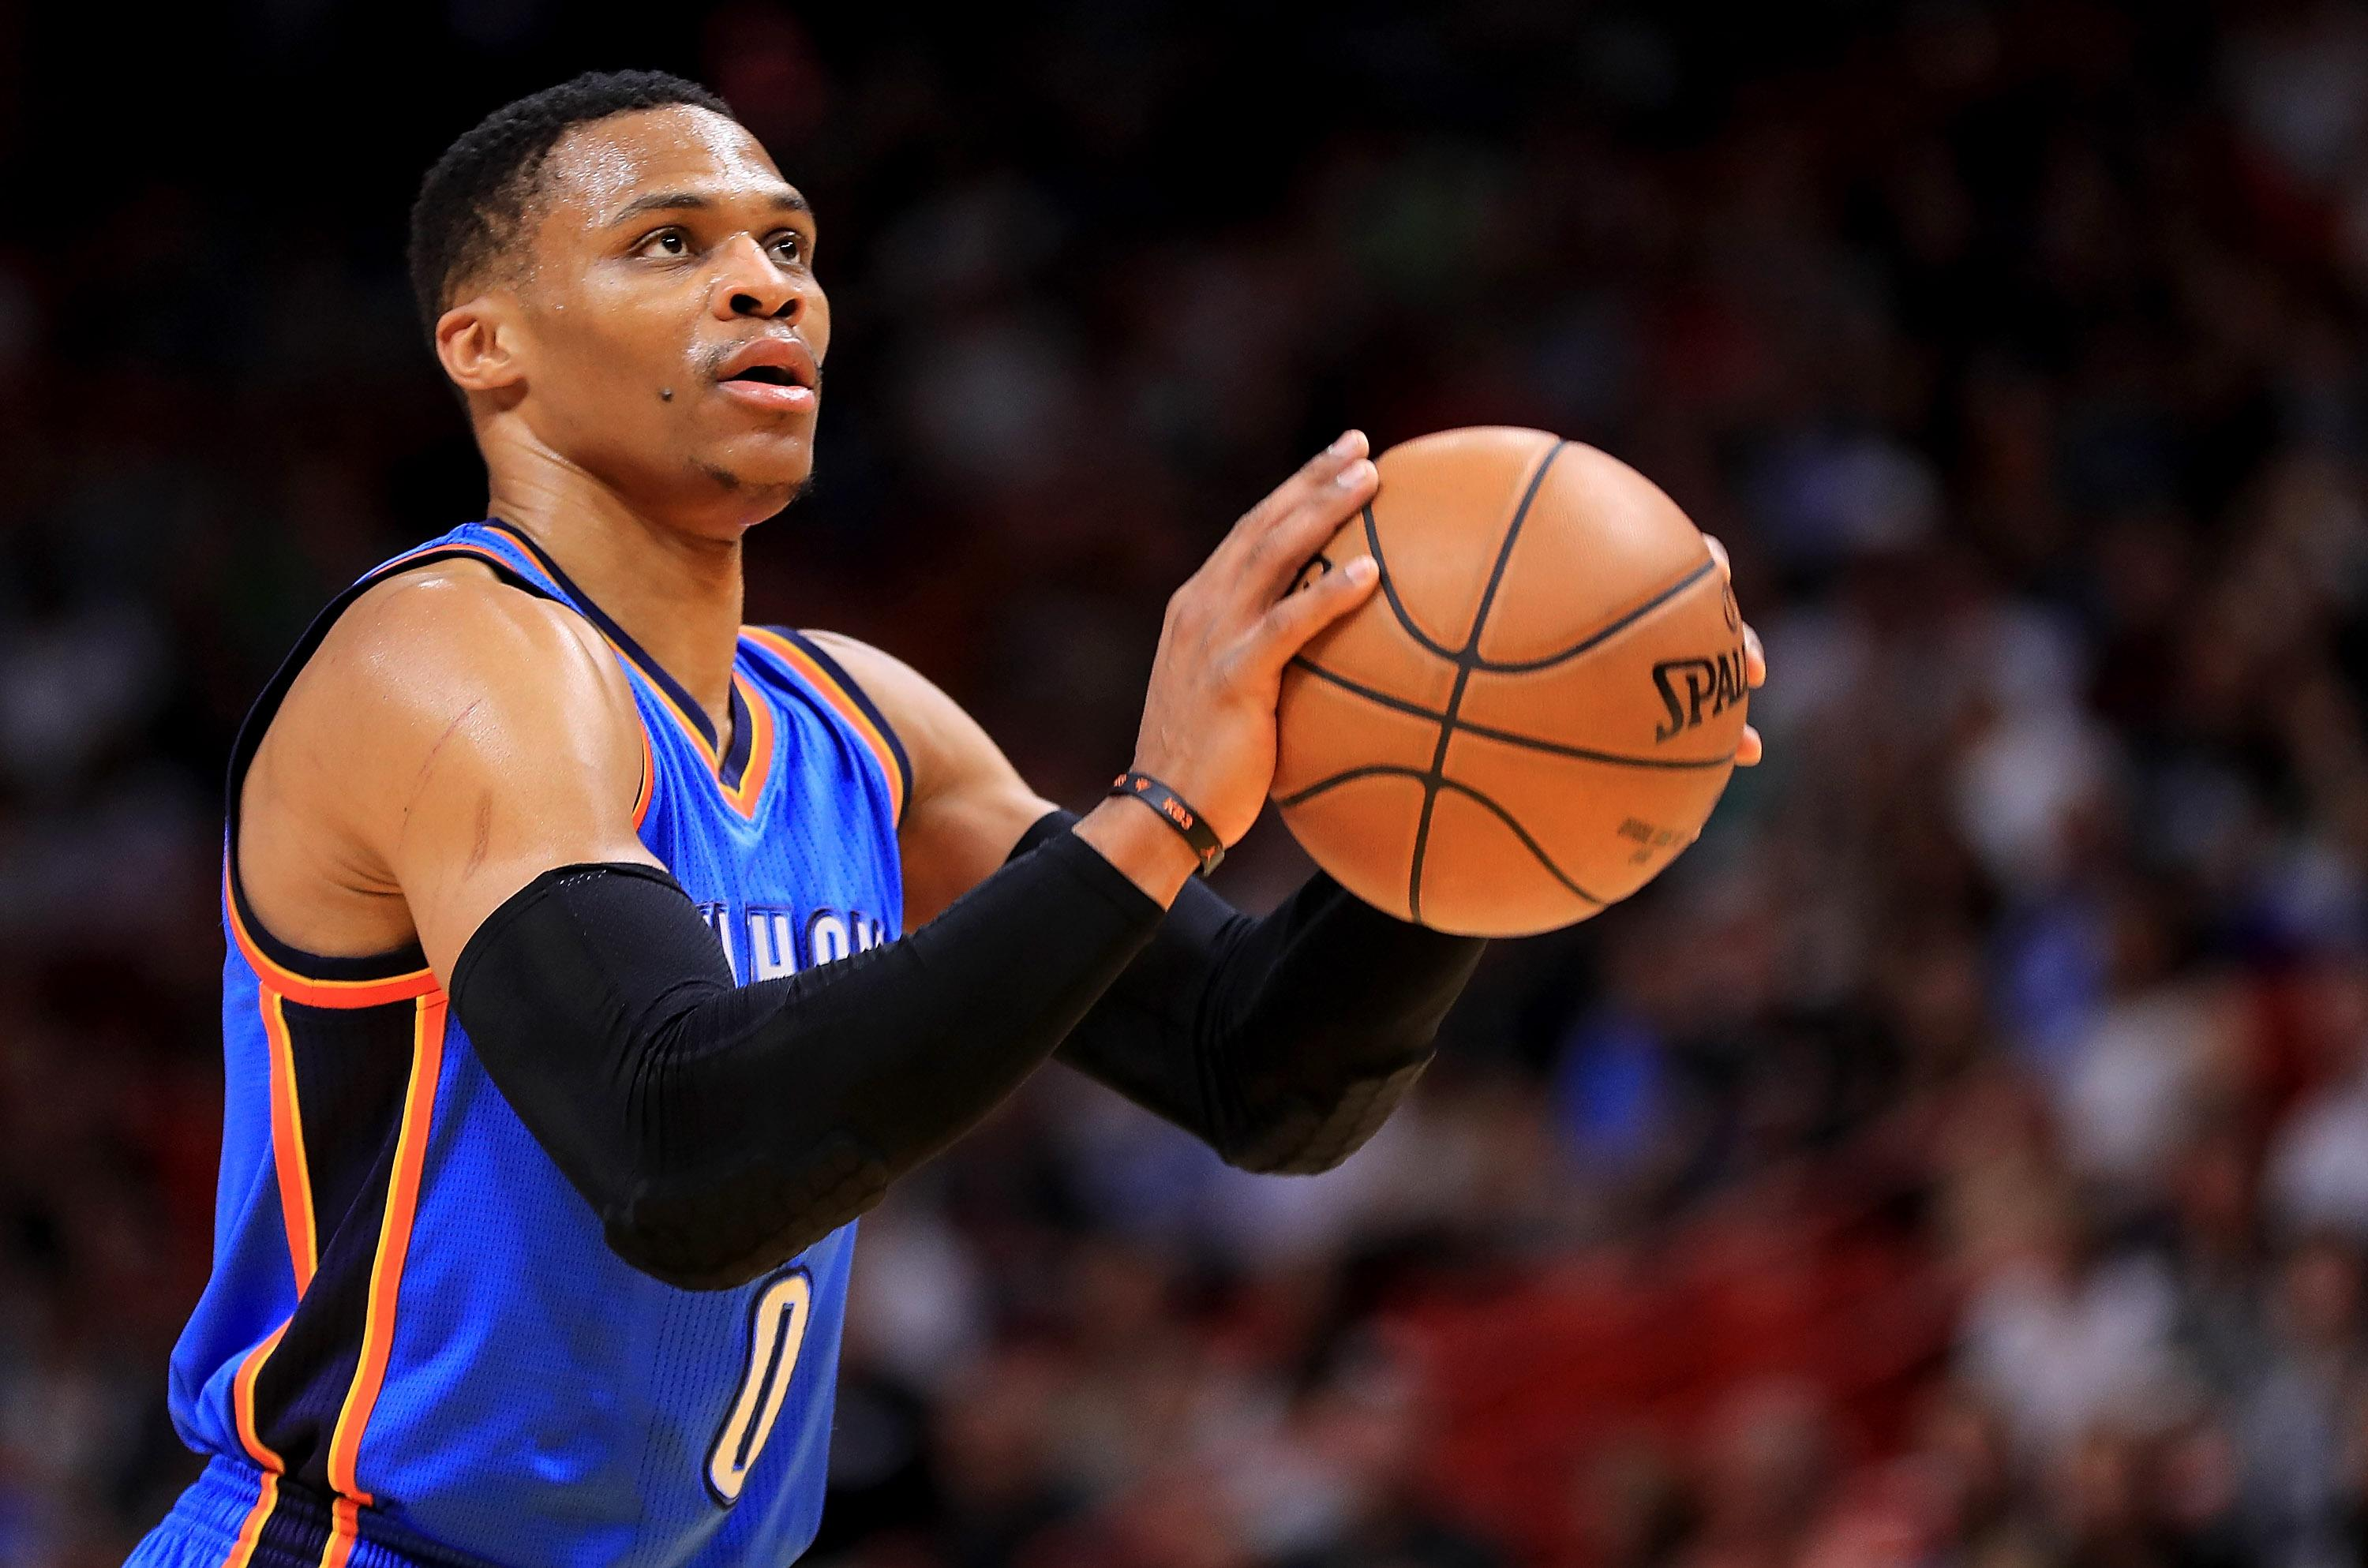 Westbrook ejected as Thunder fall to Grizzlies